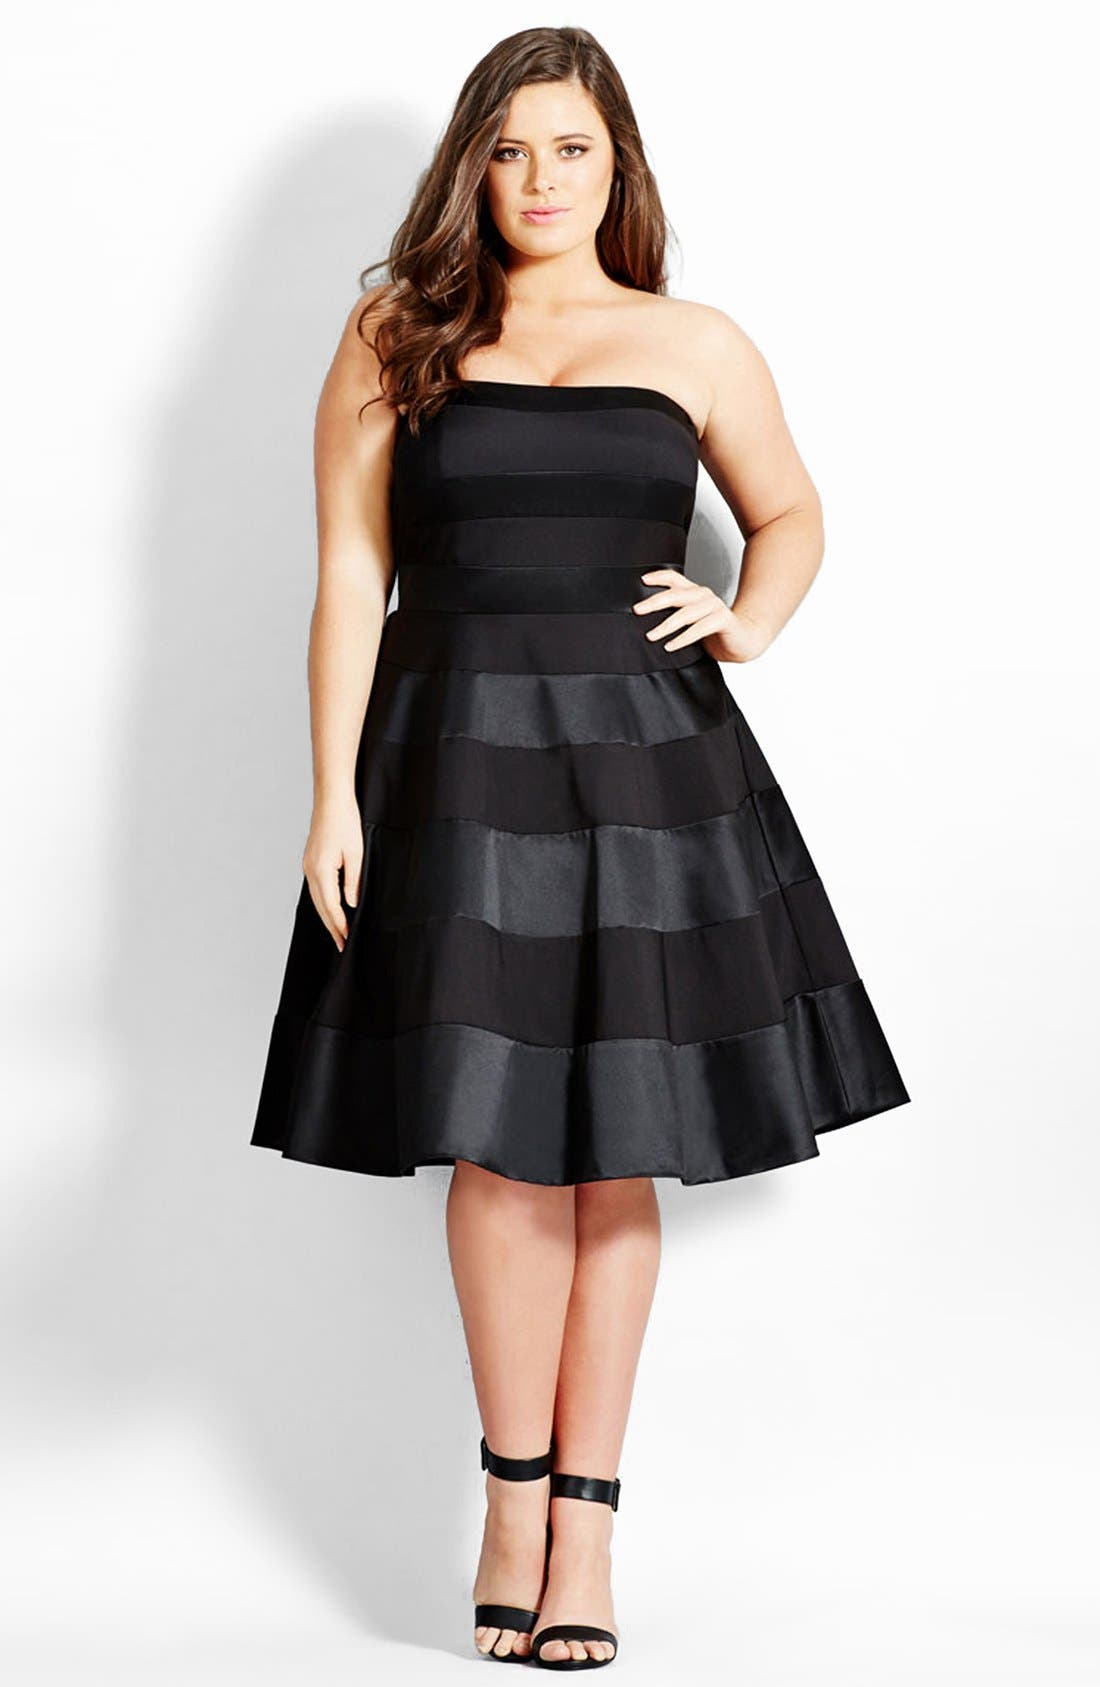 Black Strapless Fit and Flare Dress